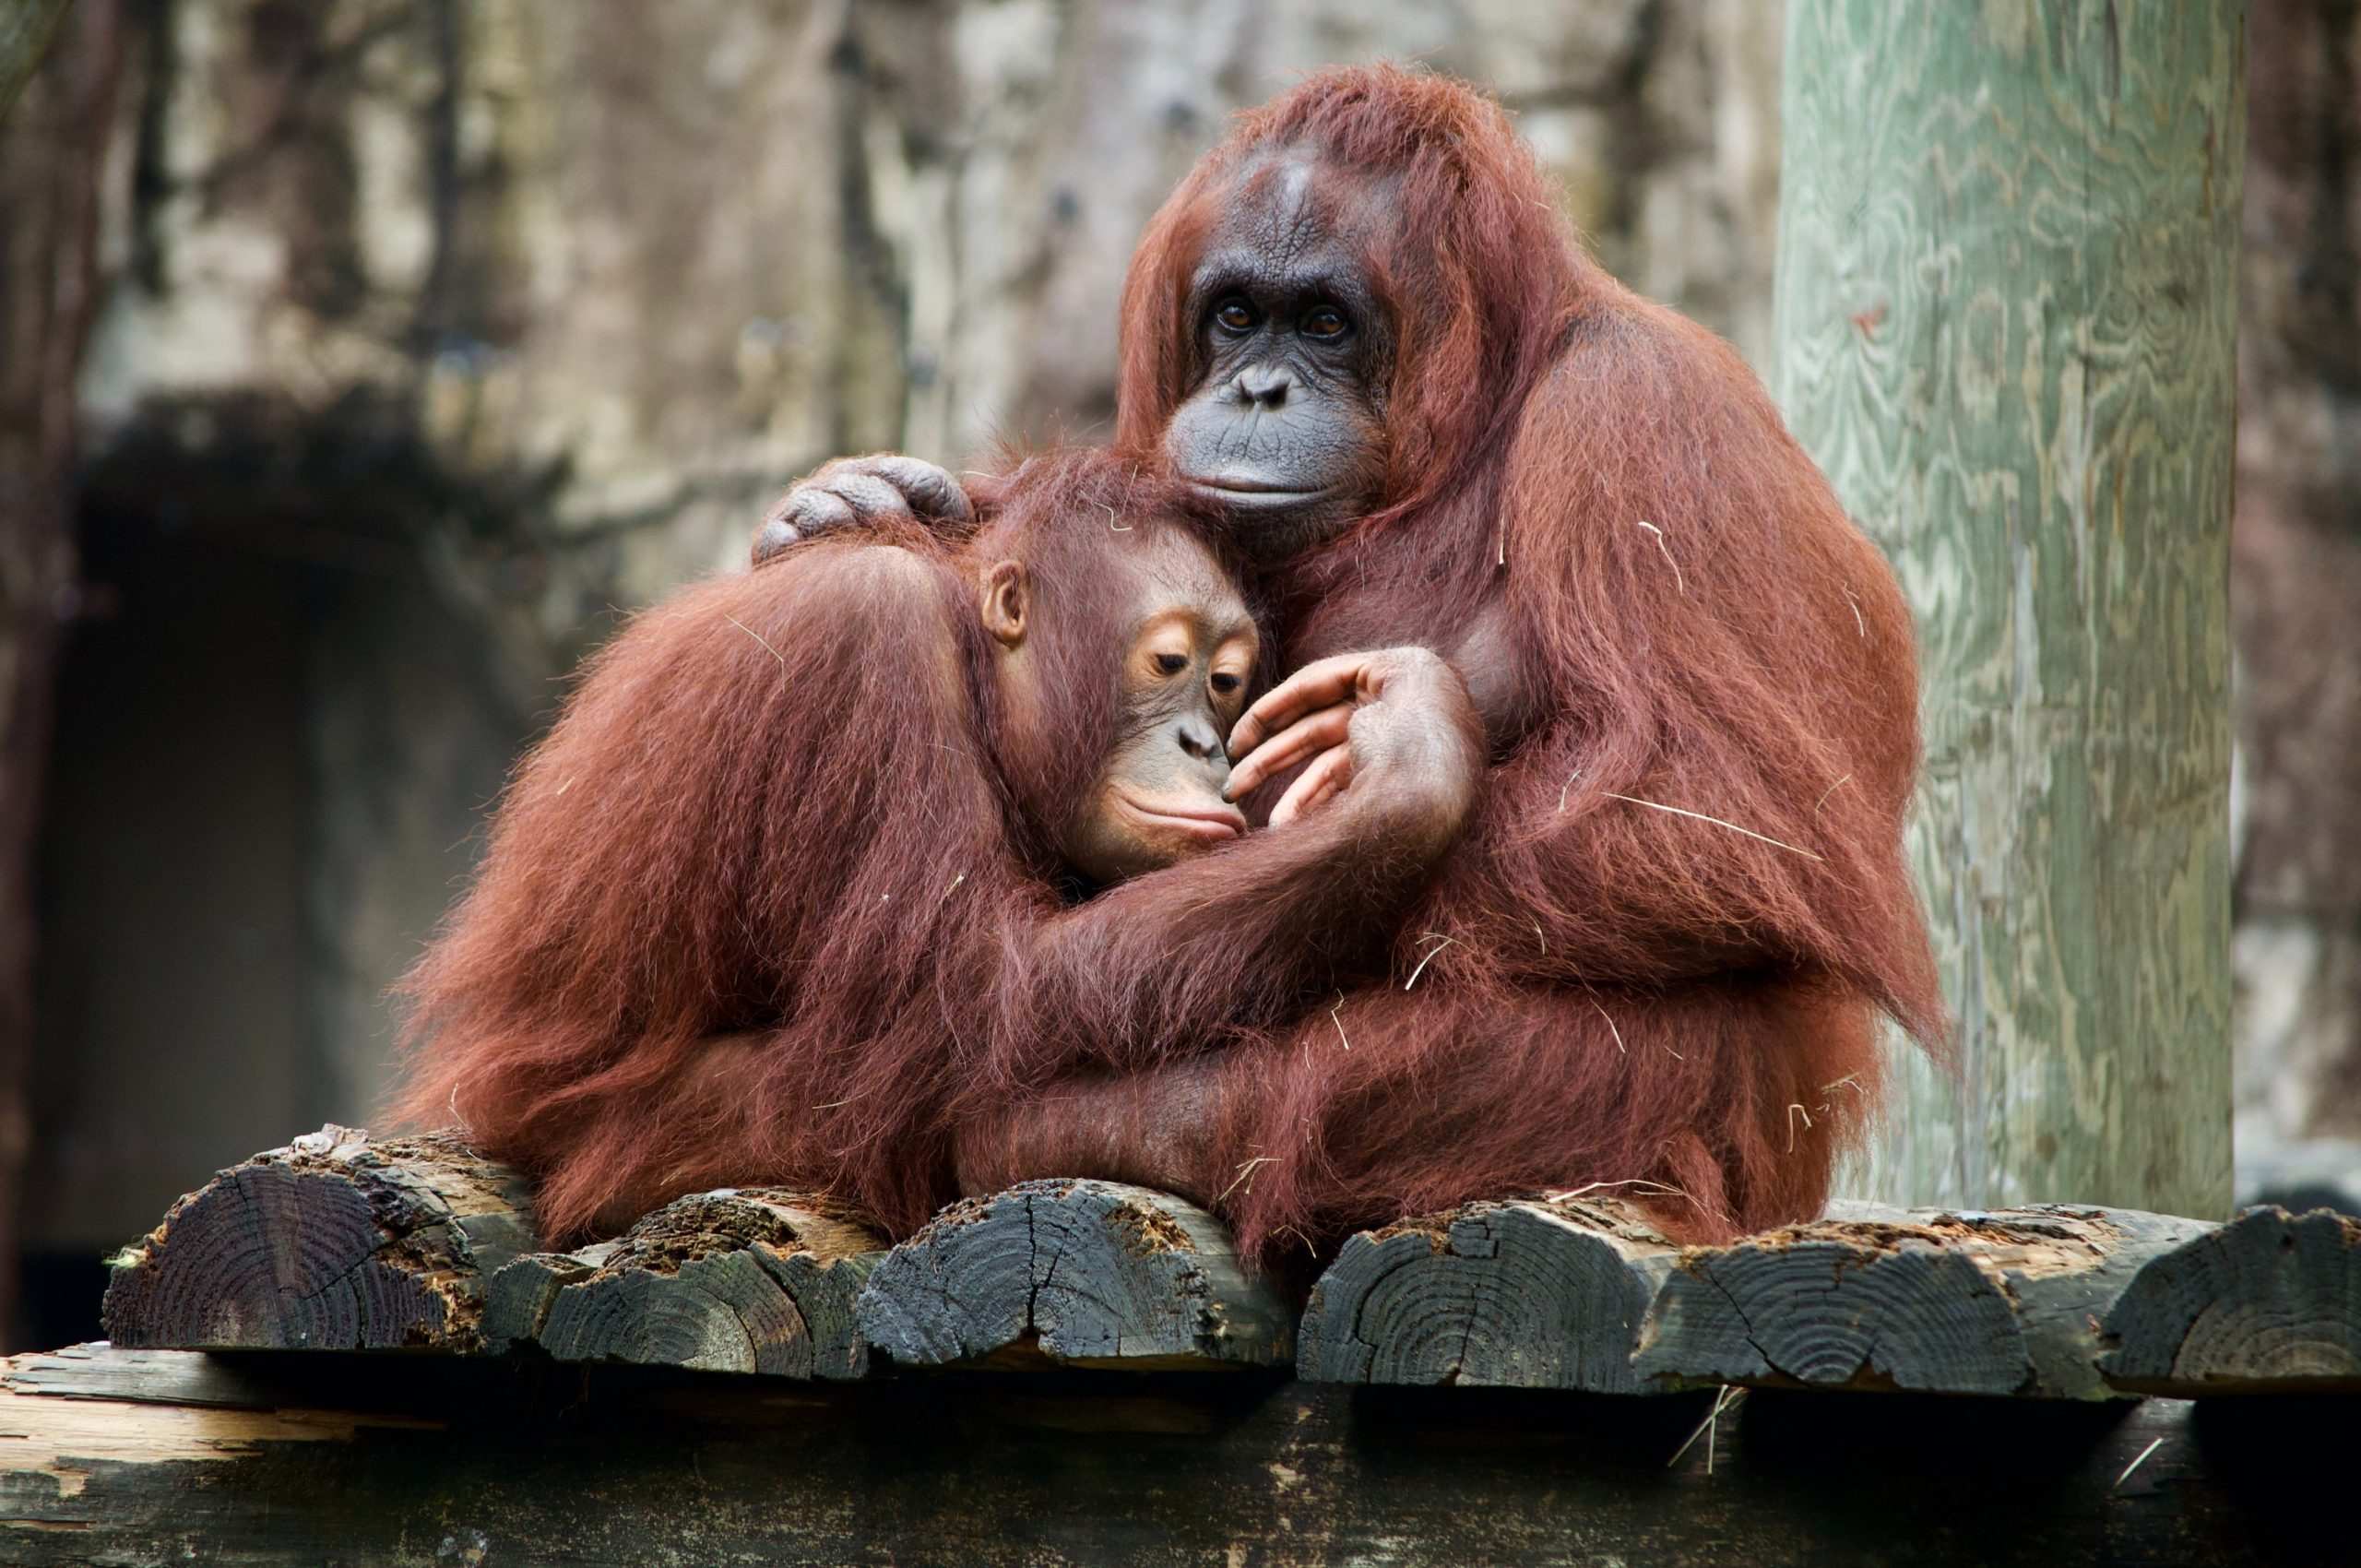 Picture of a mother primate cuddling her child